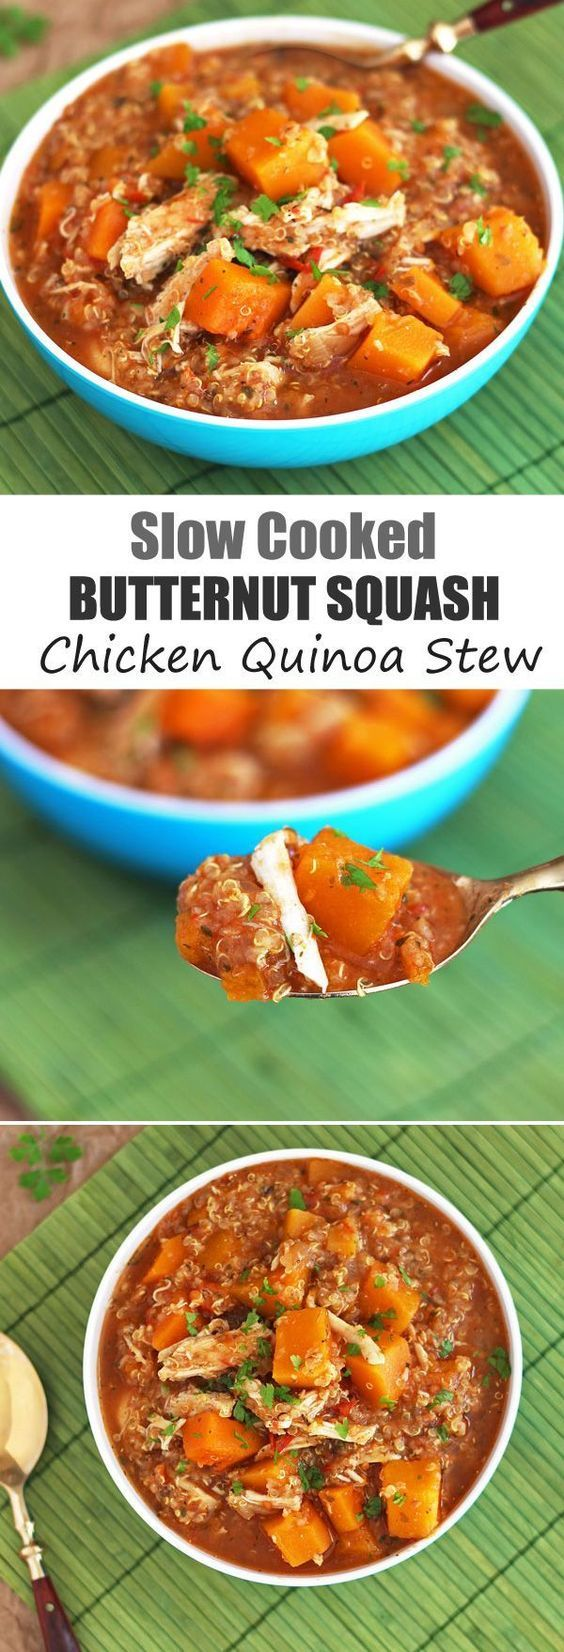 Slow Cooker Butternut Squash Stew with Quinoa & Chicken - A warming healthy meal that cooks in the crockpot. This recipe is pure comfort food! Perfect for weeknight meals in the Fall and Winter.